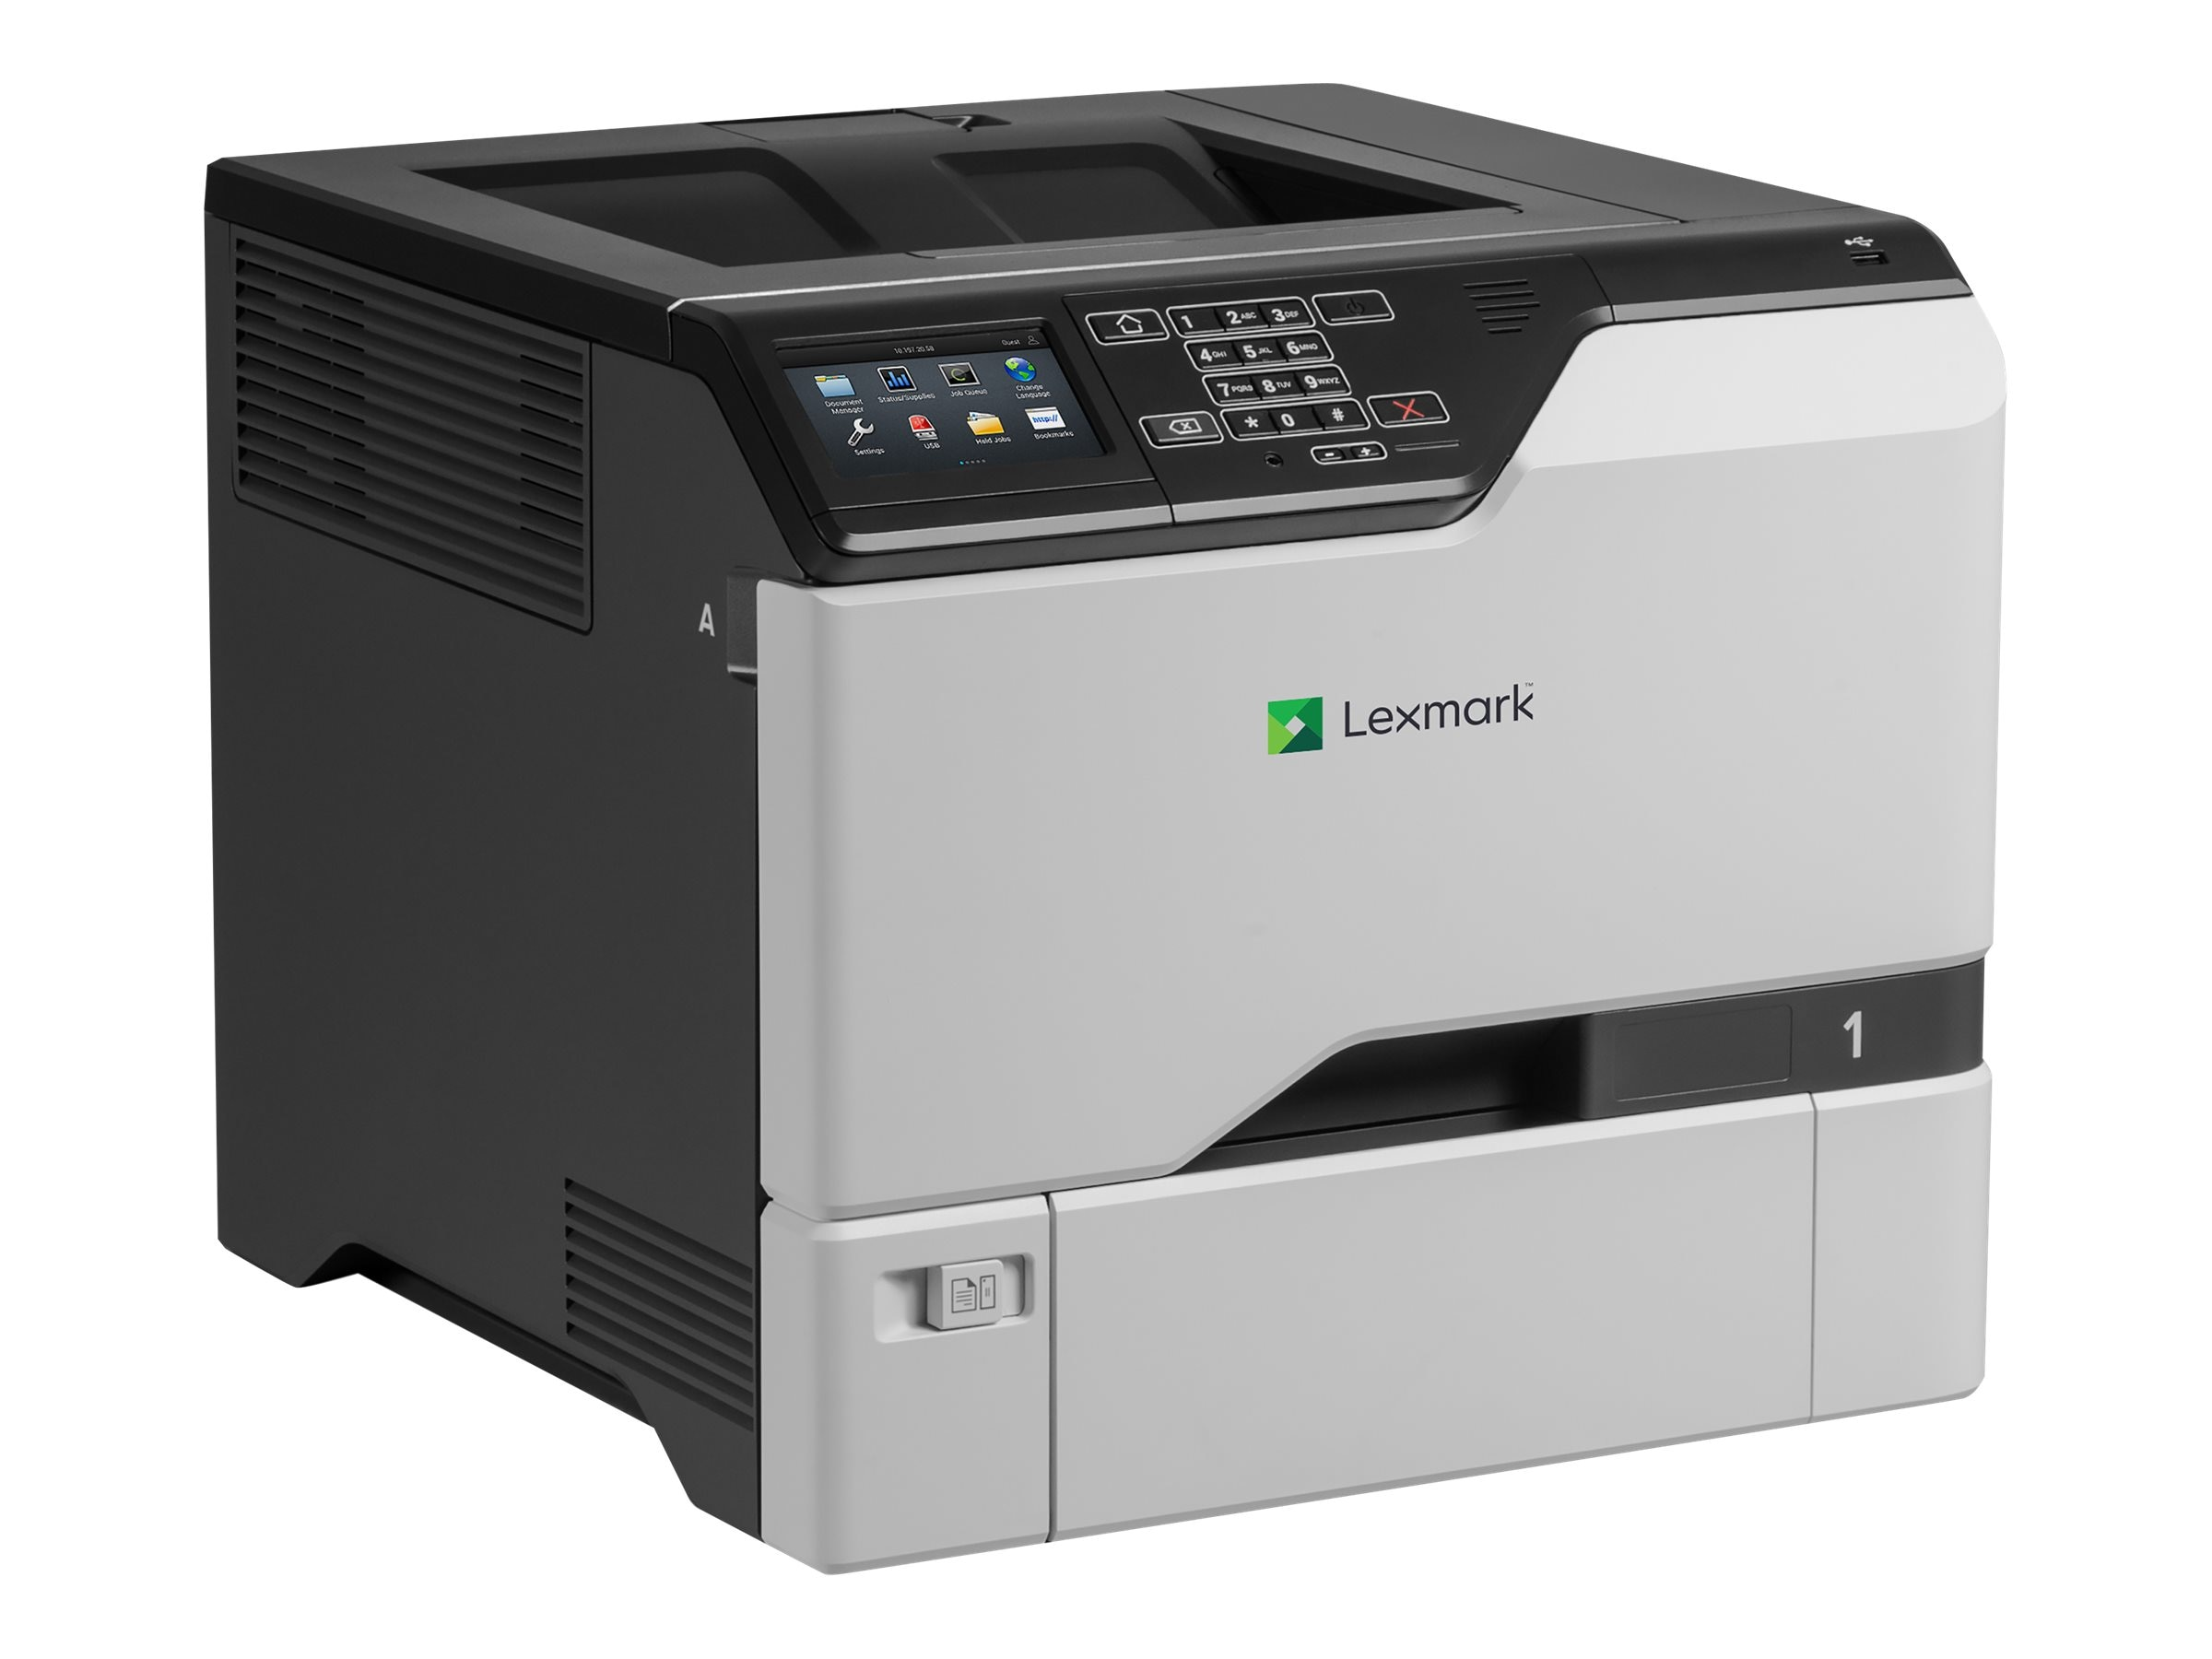 Lexmark CS725de Color Laser Printer, 40C9000